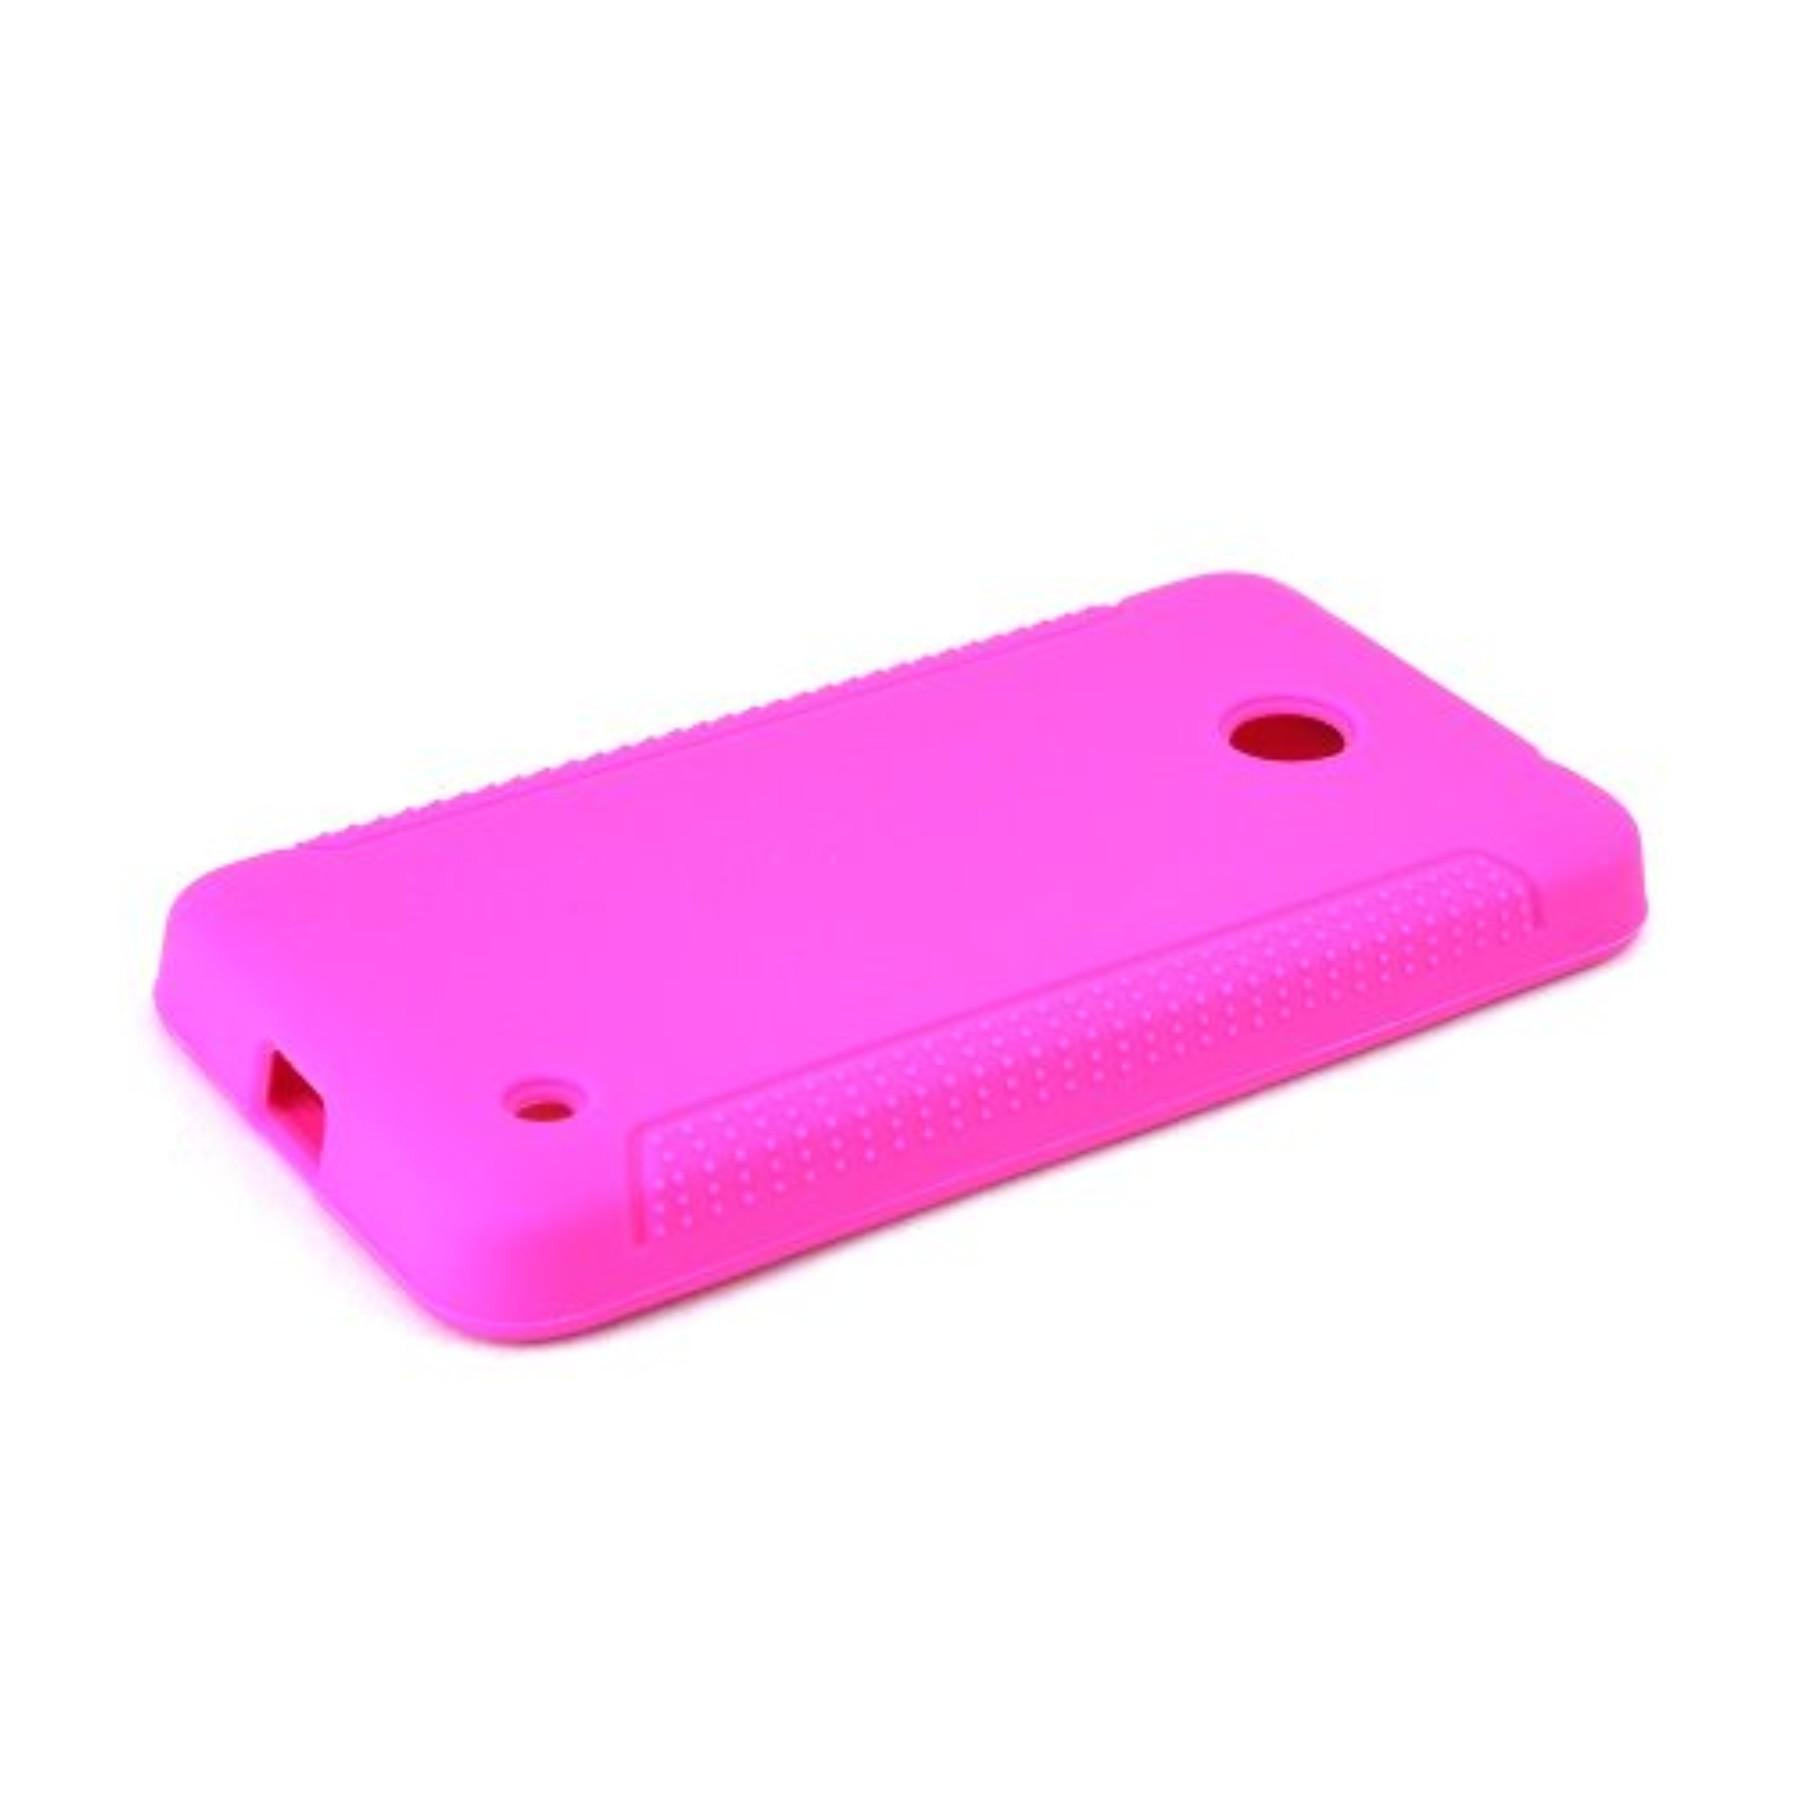 Karendeals Hot Pink Nokia Lumia 635 Silicone Case Cover